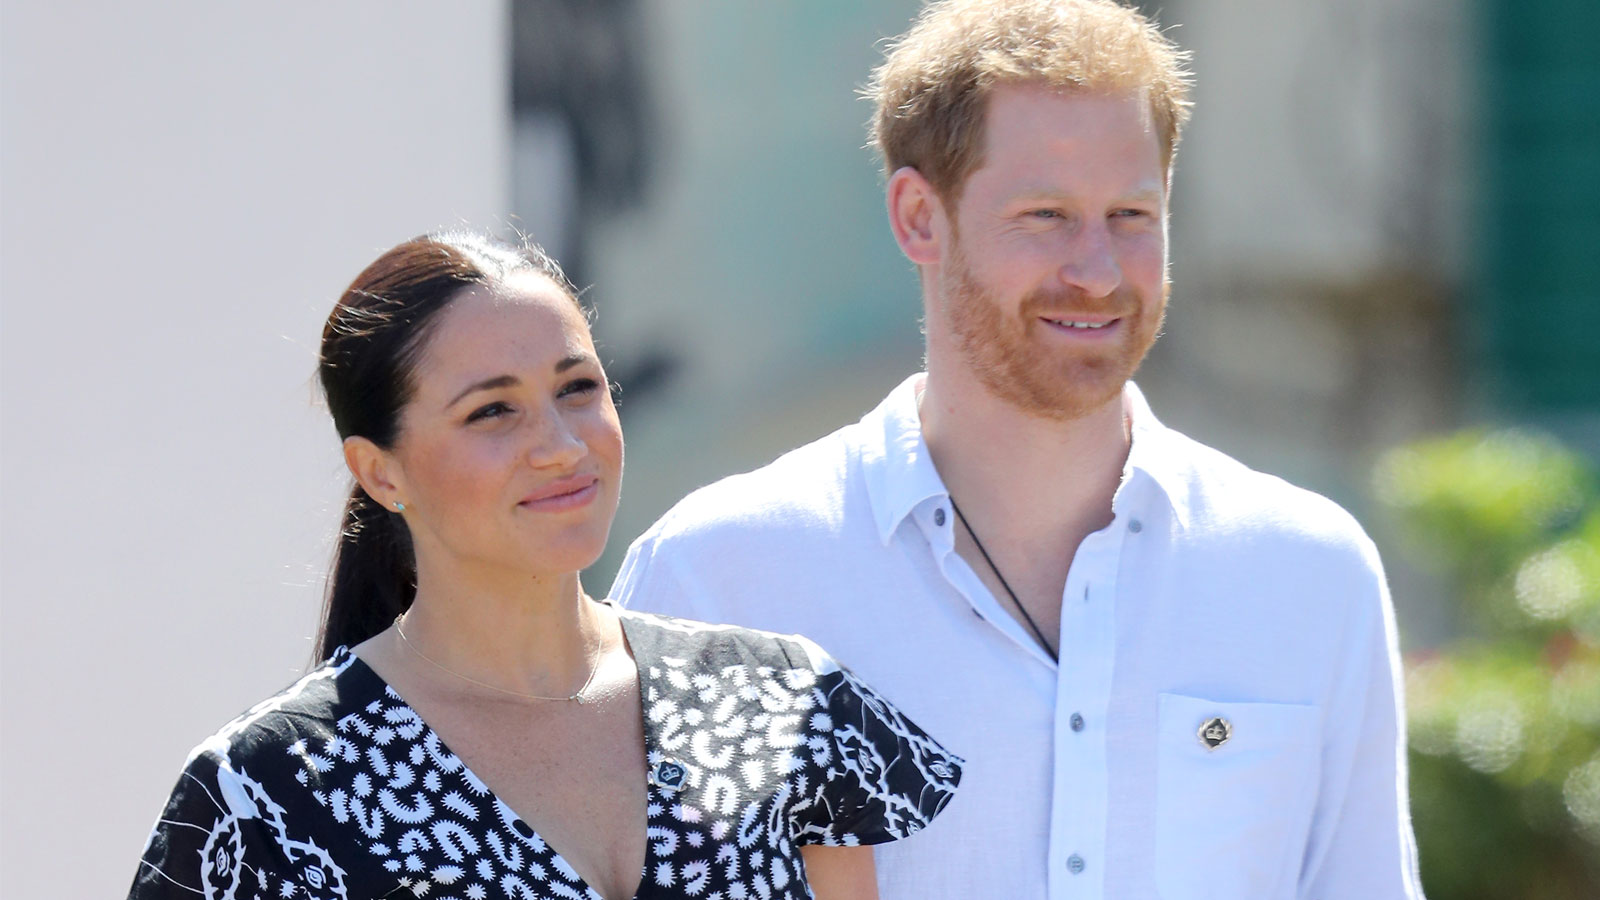 Meghan and Harry smile as they visit a Justice Desk initiative in Nyanga township, during their royal tour of South Africa on Monday.